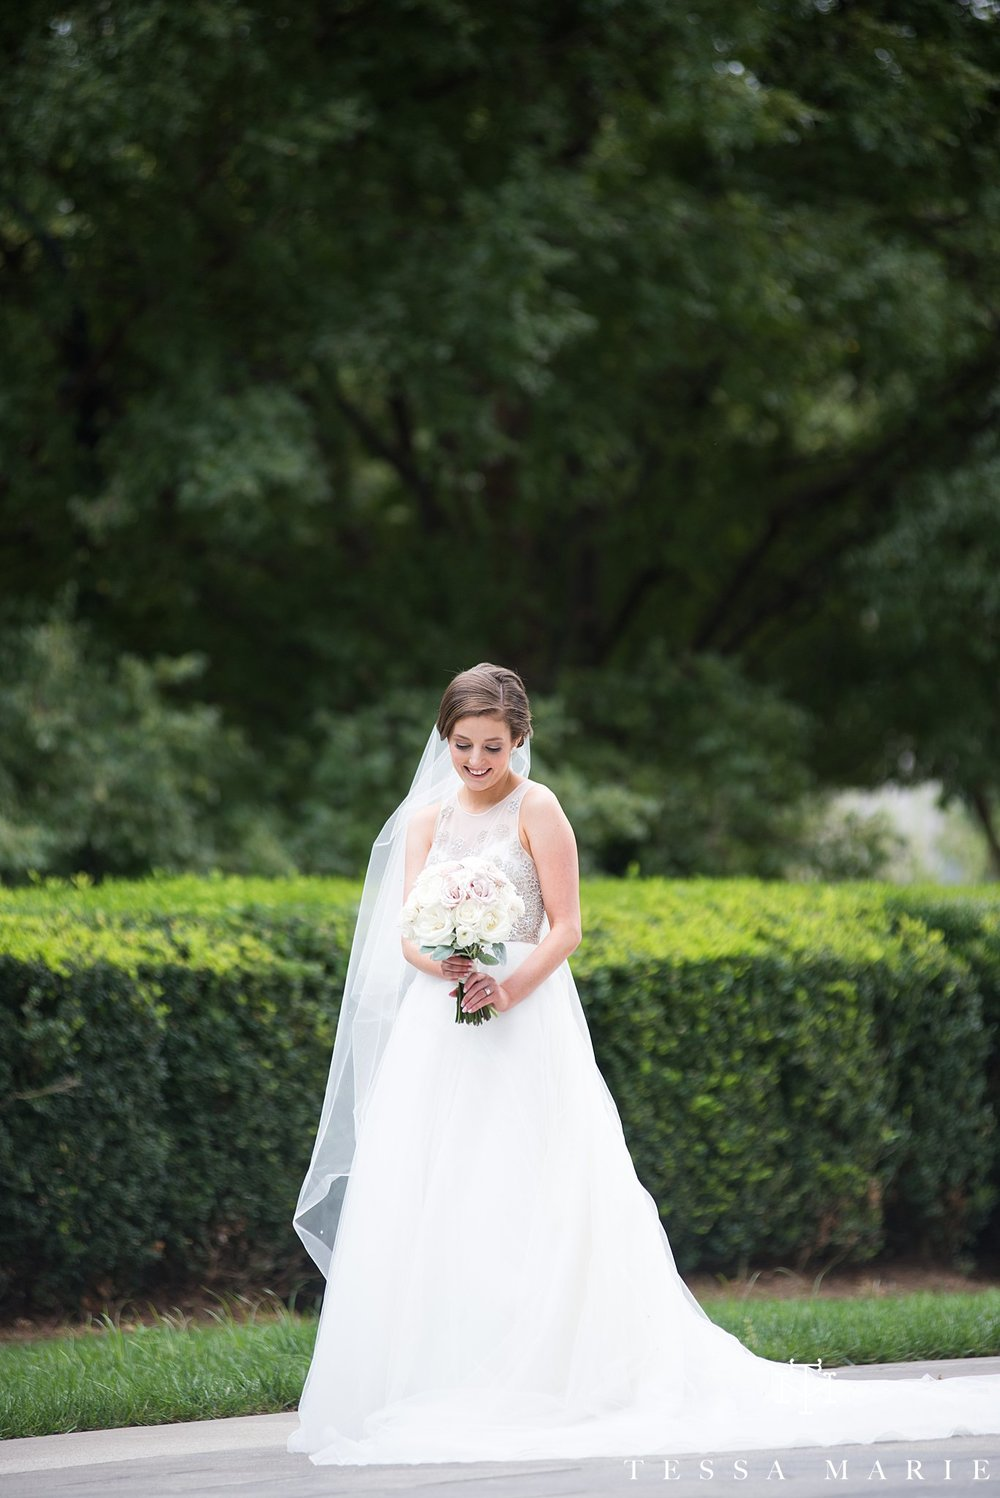 atlanta_wedding_photographer_tessa_marie_weddings_lowes_hotel_peachtree_midtown_fall_wedding_0298.jpg